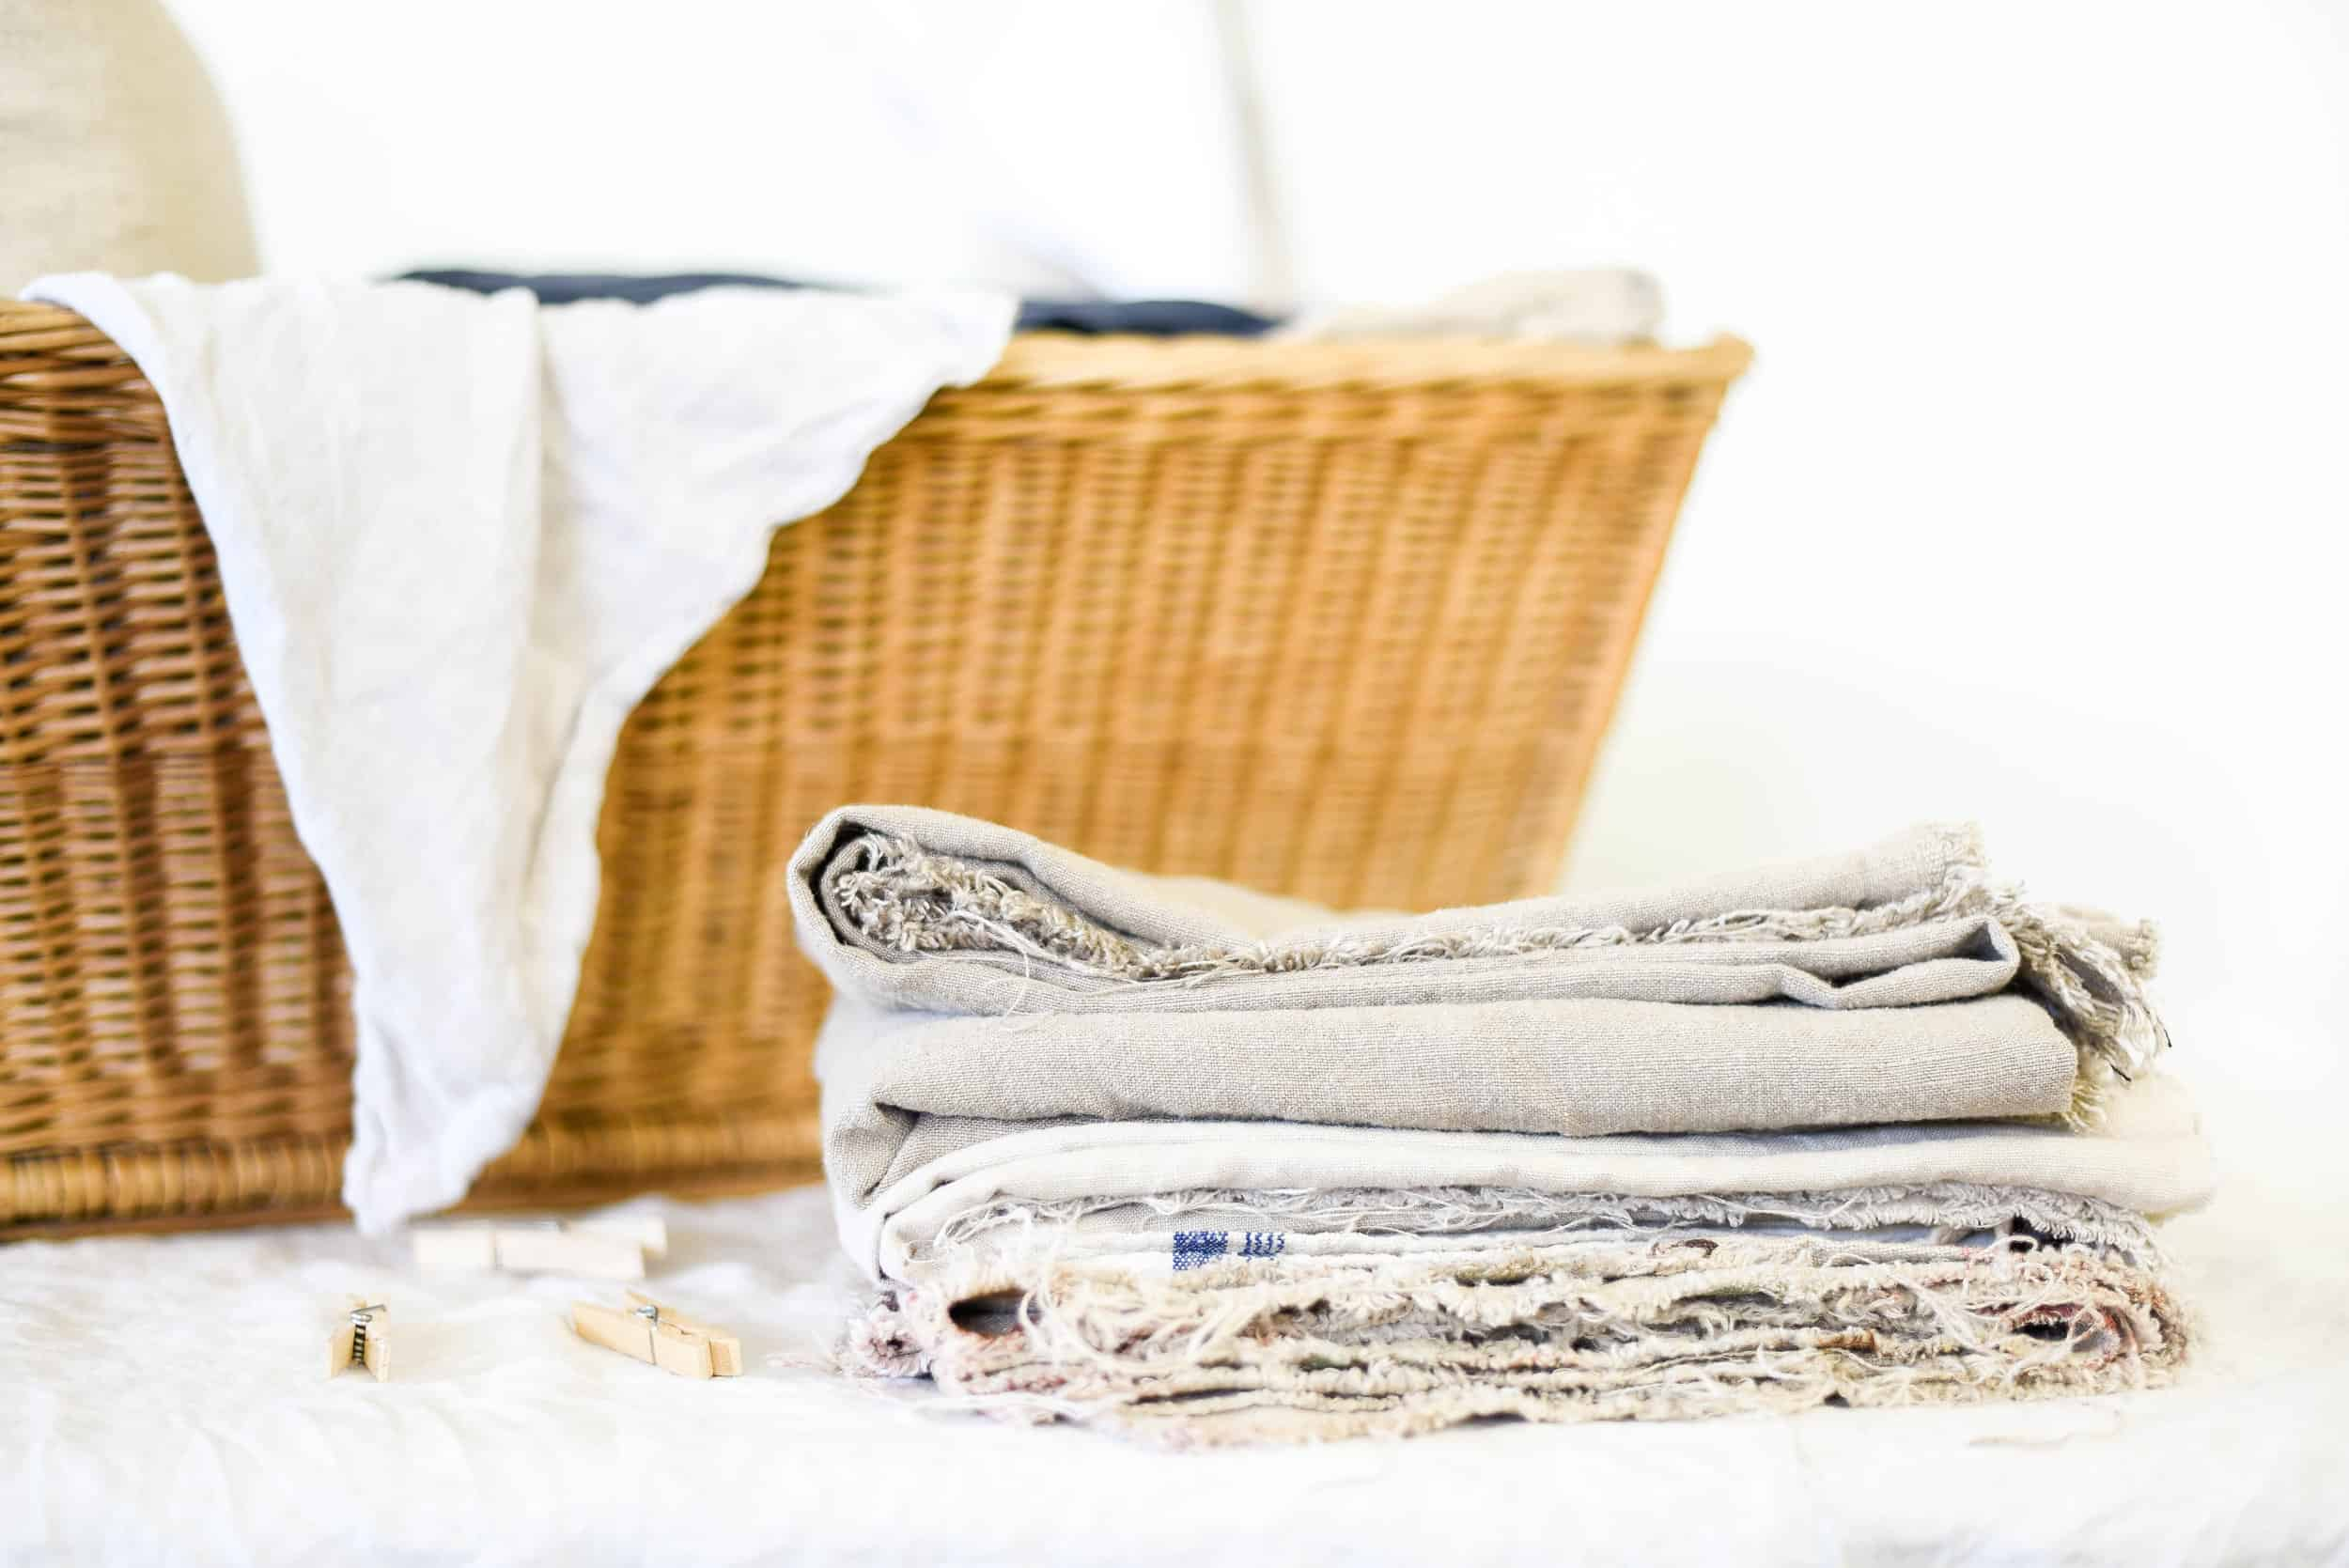 linen in a basket